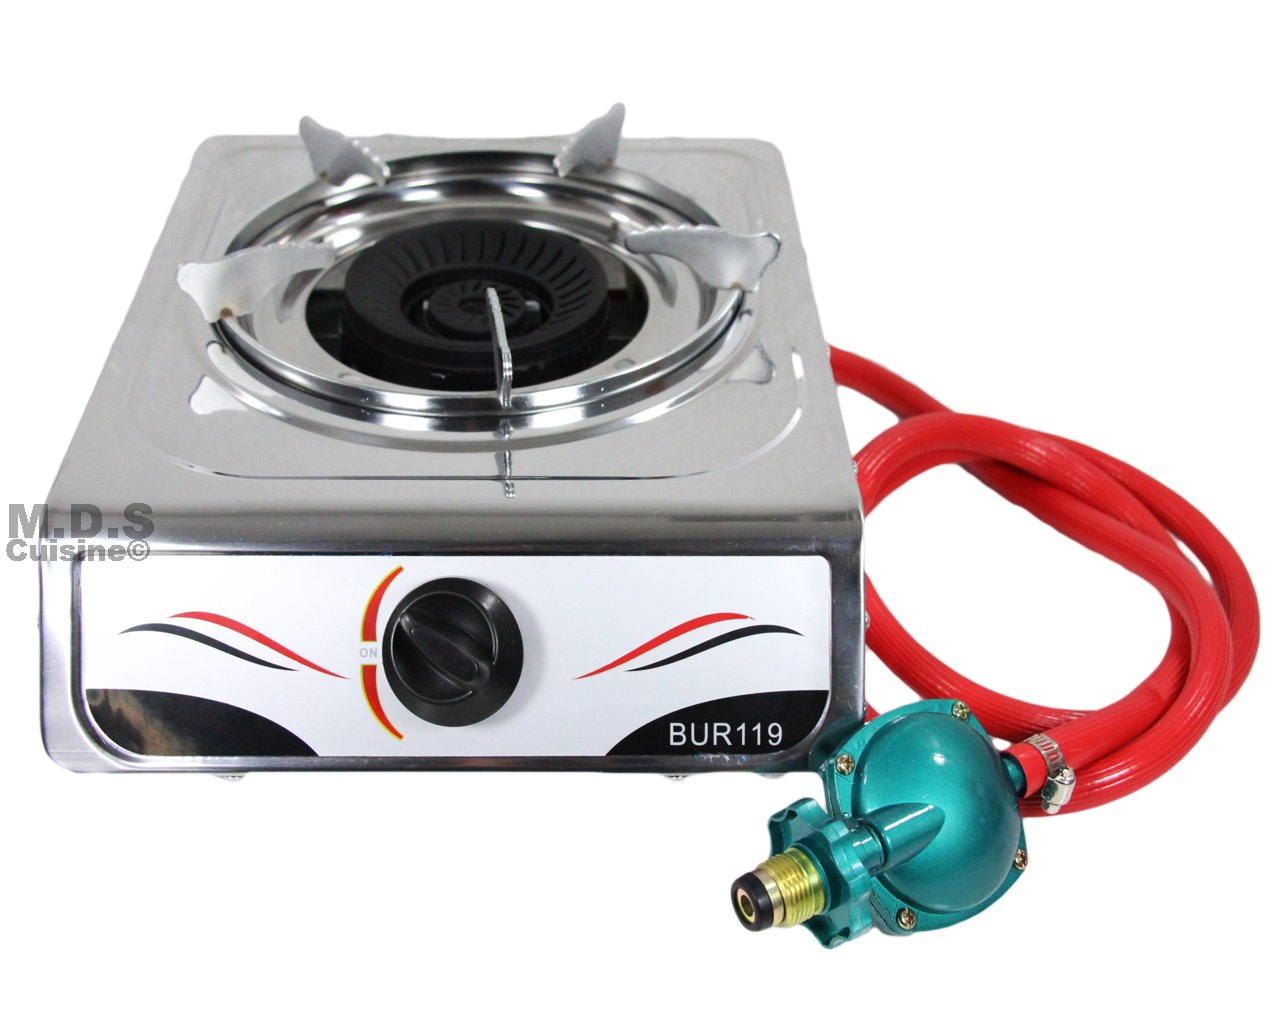 M.D.S Cuisine Cookwares Stove Single Burner Propane Gas Stainless Steel Portable Camping Outdoor